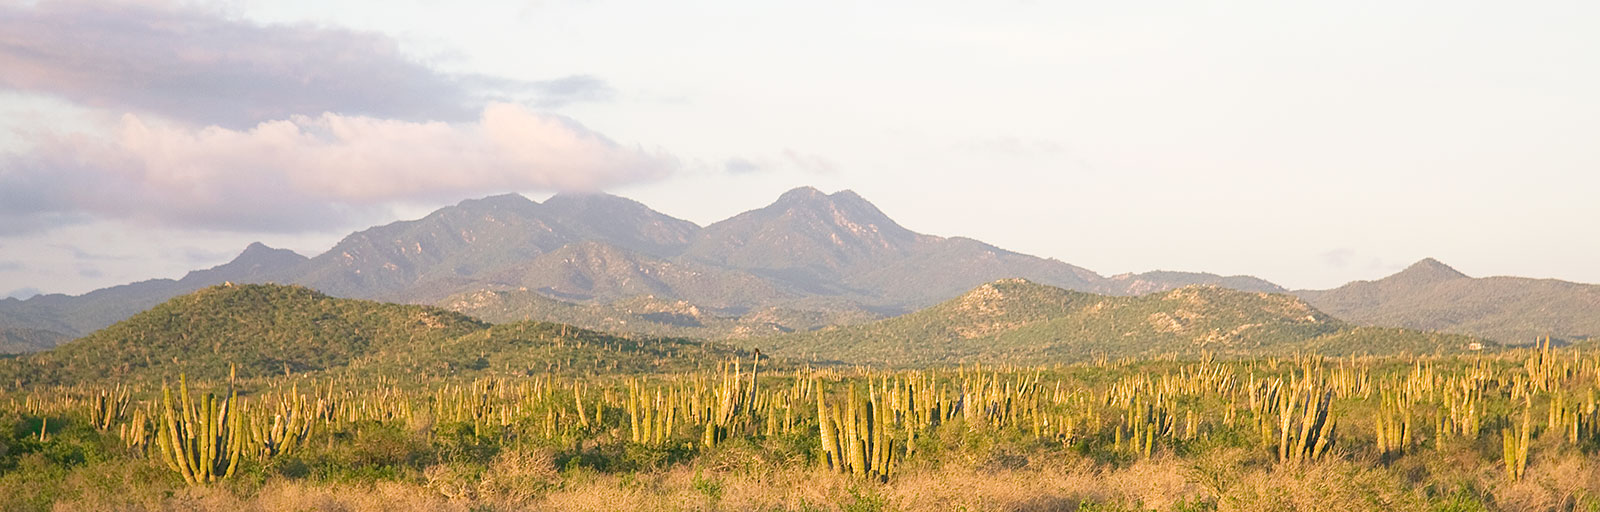 Baja Yoga Retreats in Mexico: Mountains & Desert